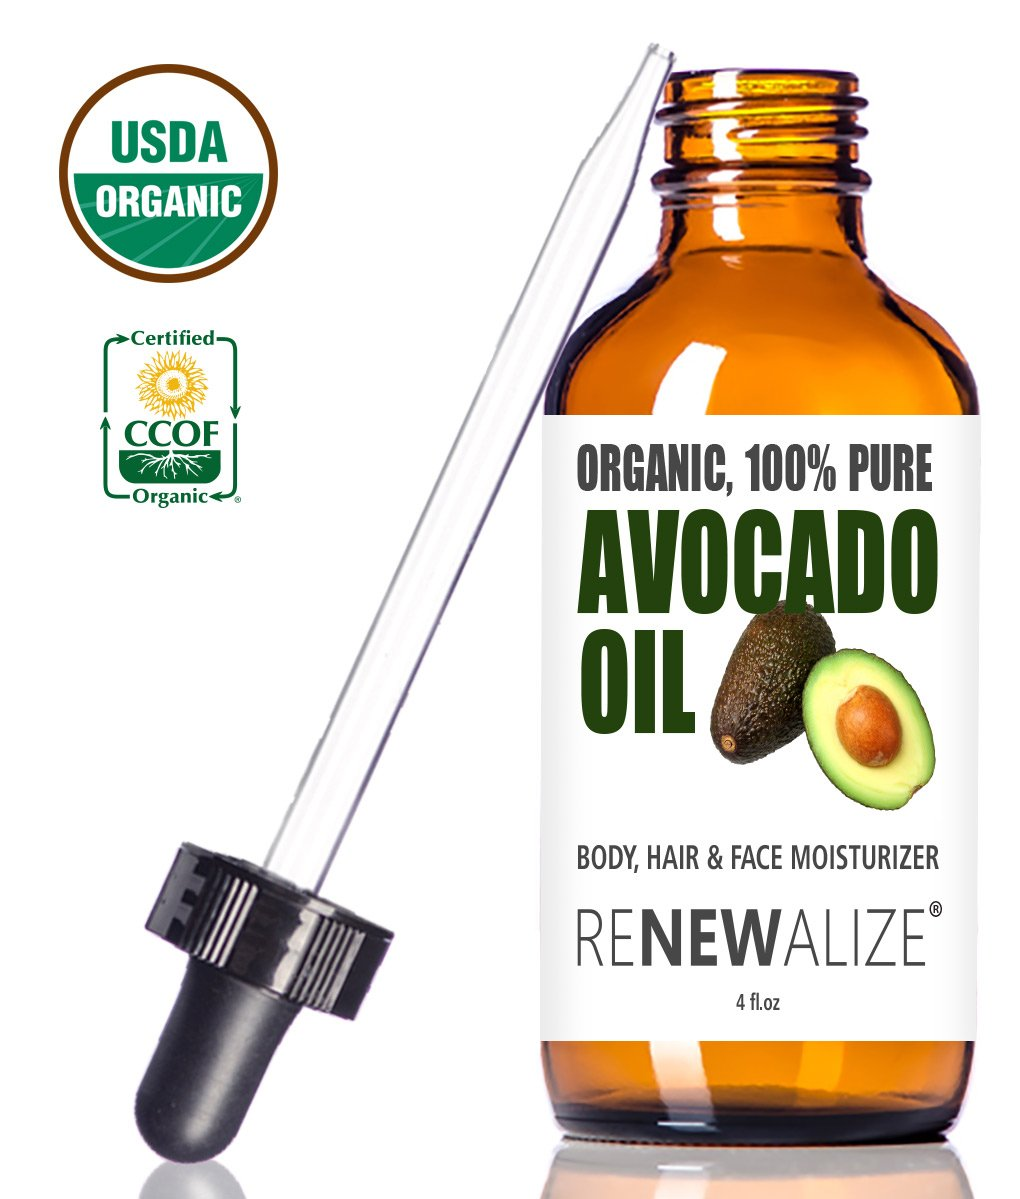 Renewalize Avocado Oil